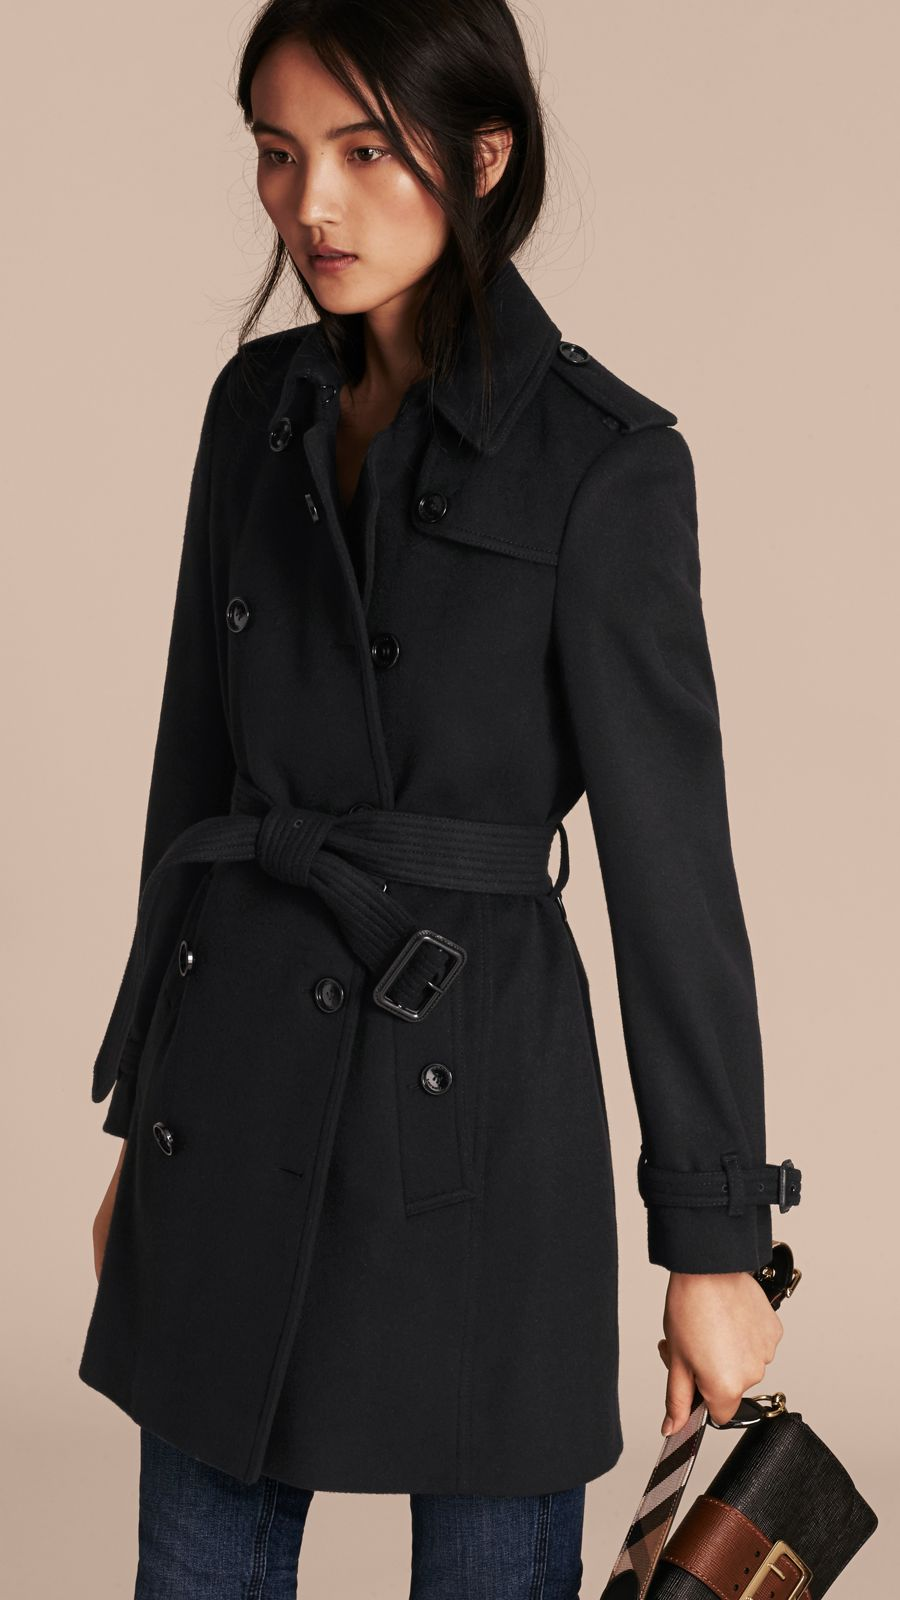 Black Virgin Wool Cashmere Trench Coat - Image 7